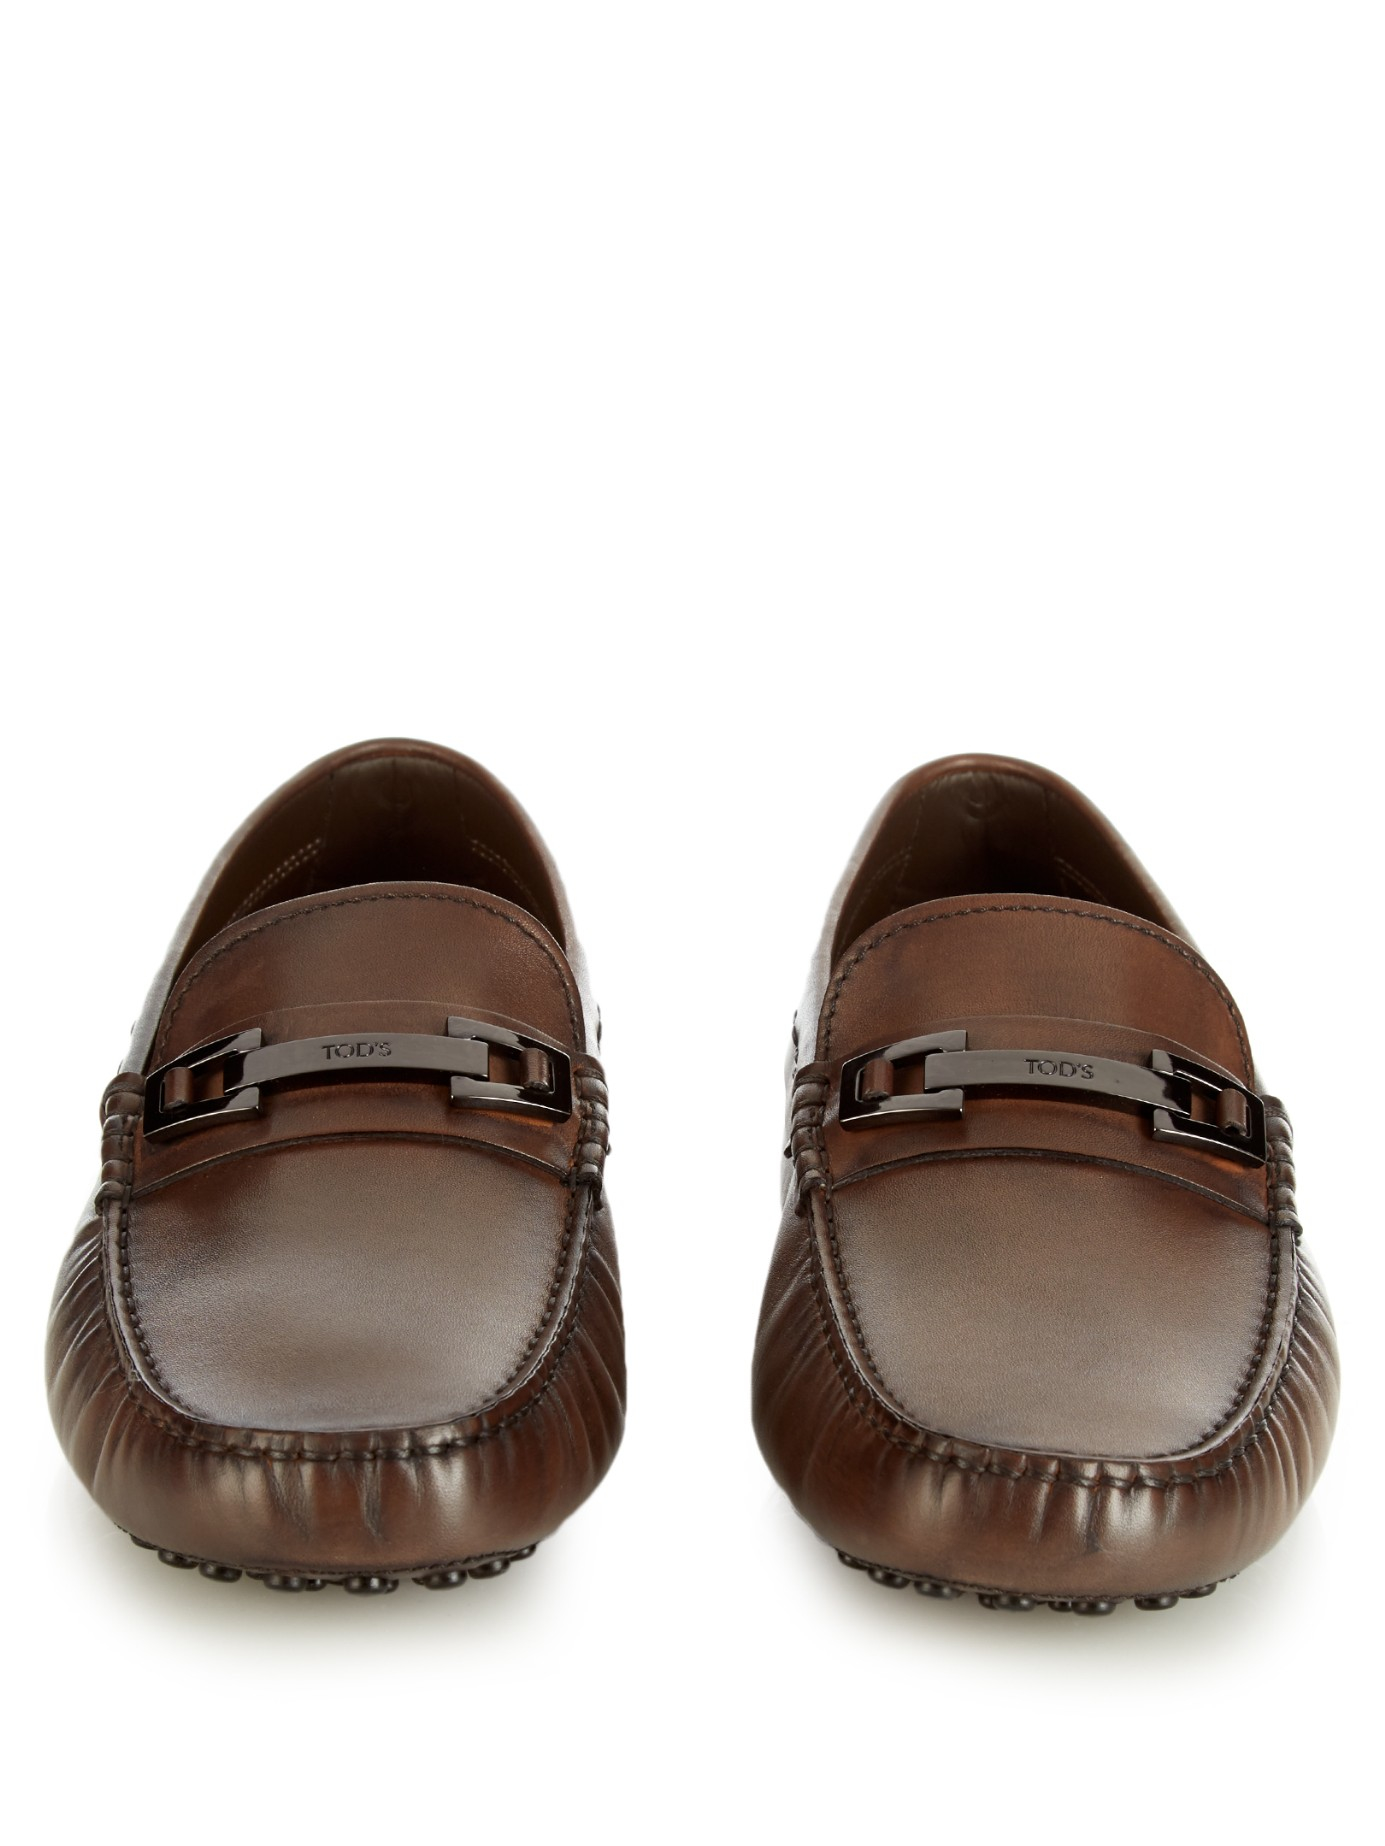 kenneth cole reaction shoes punchual loafers bread cranberry